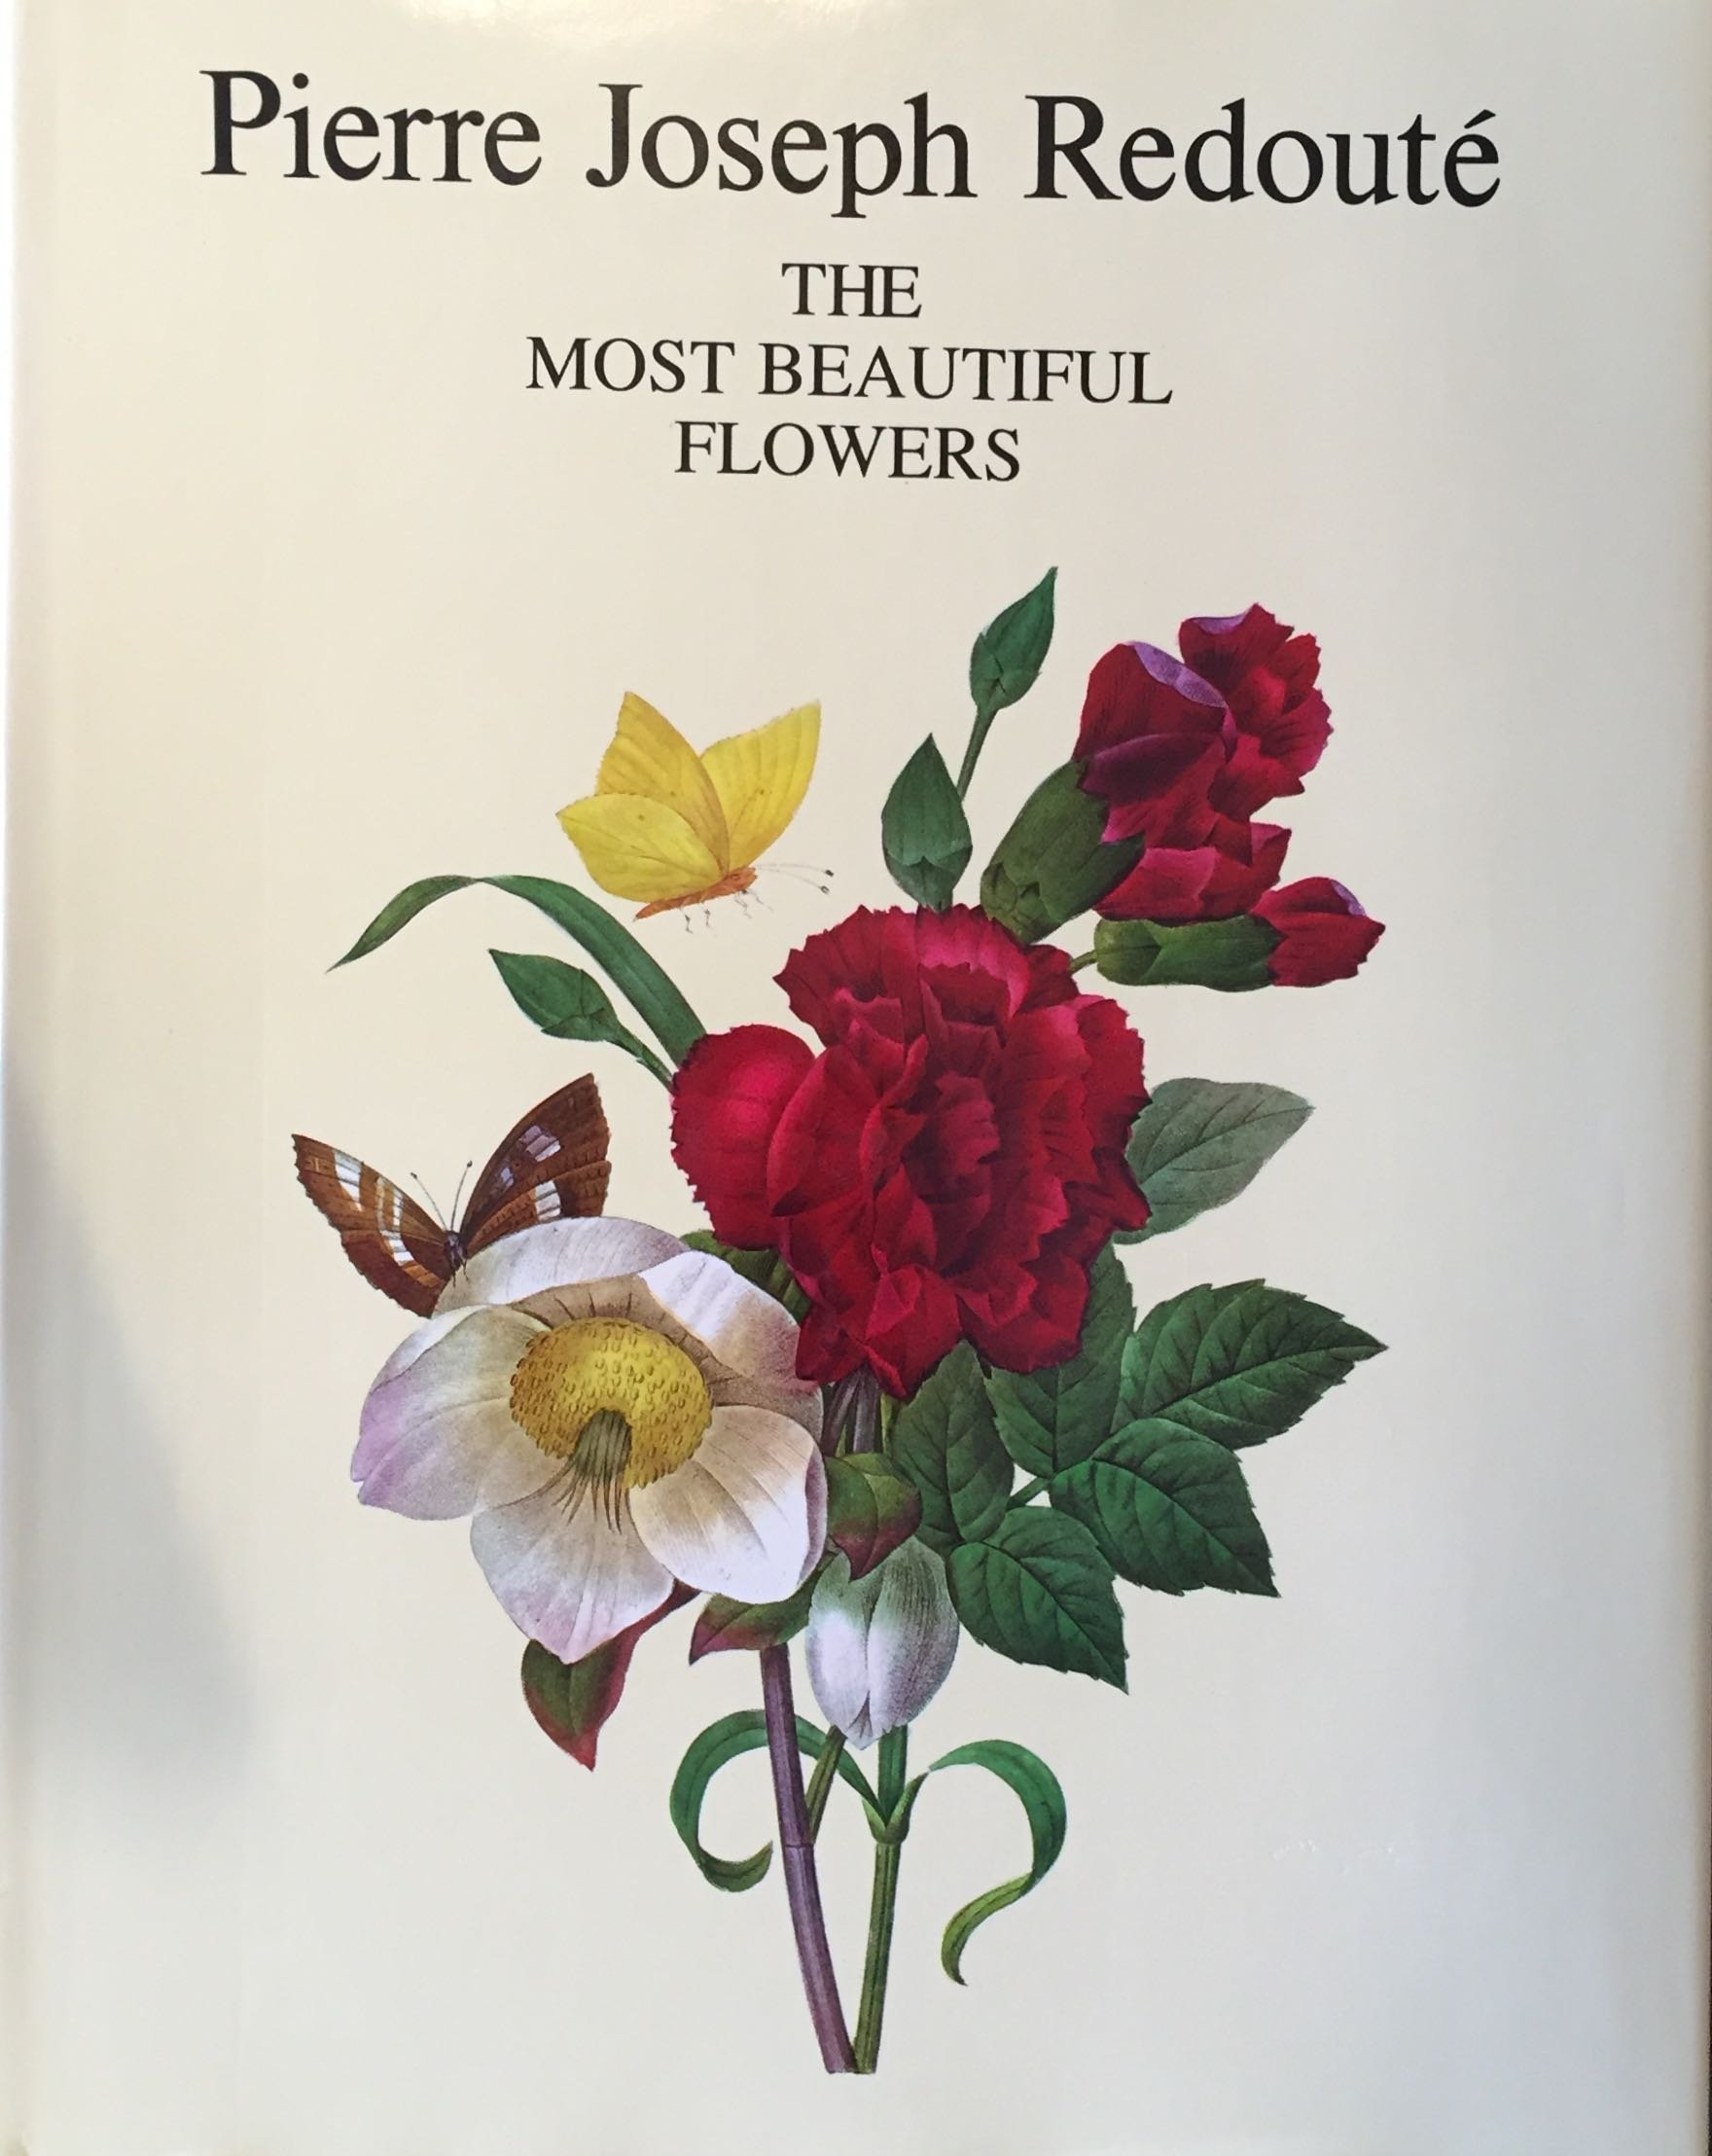 The most beautiful flowers pierre joseph redoute 9780914427087 the most beautiful flowers pierre joseph redoute 9780914427087 amazon books izmirmasajfo